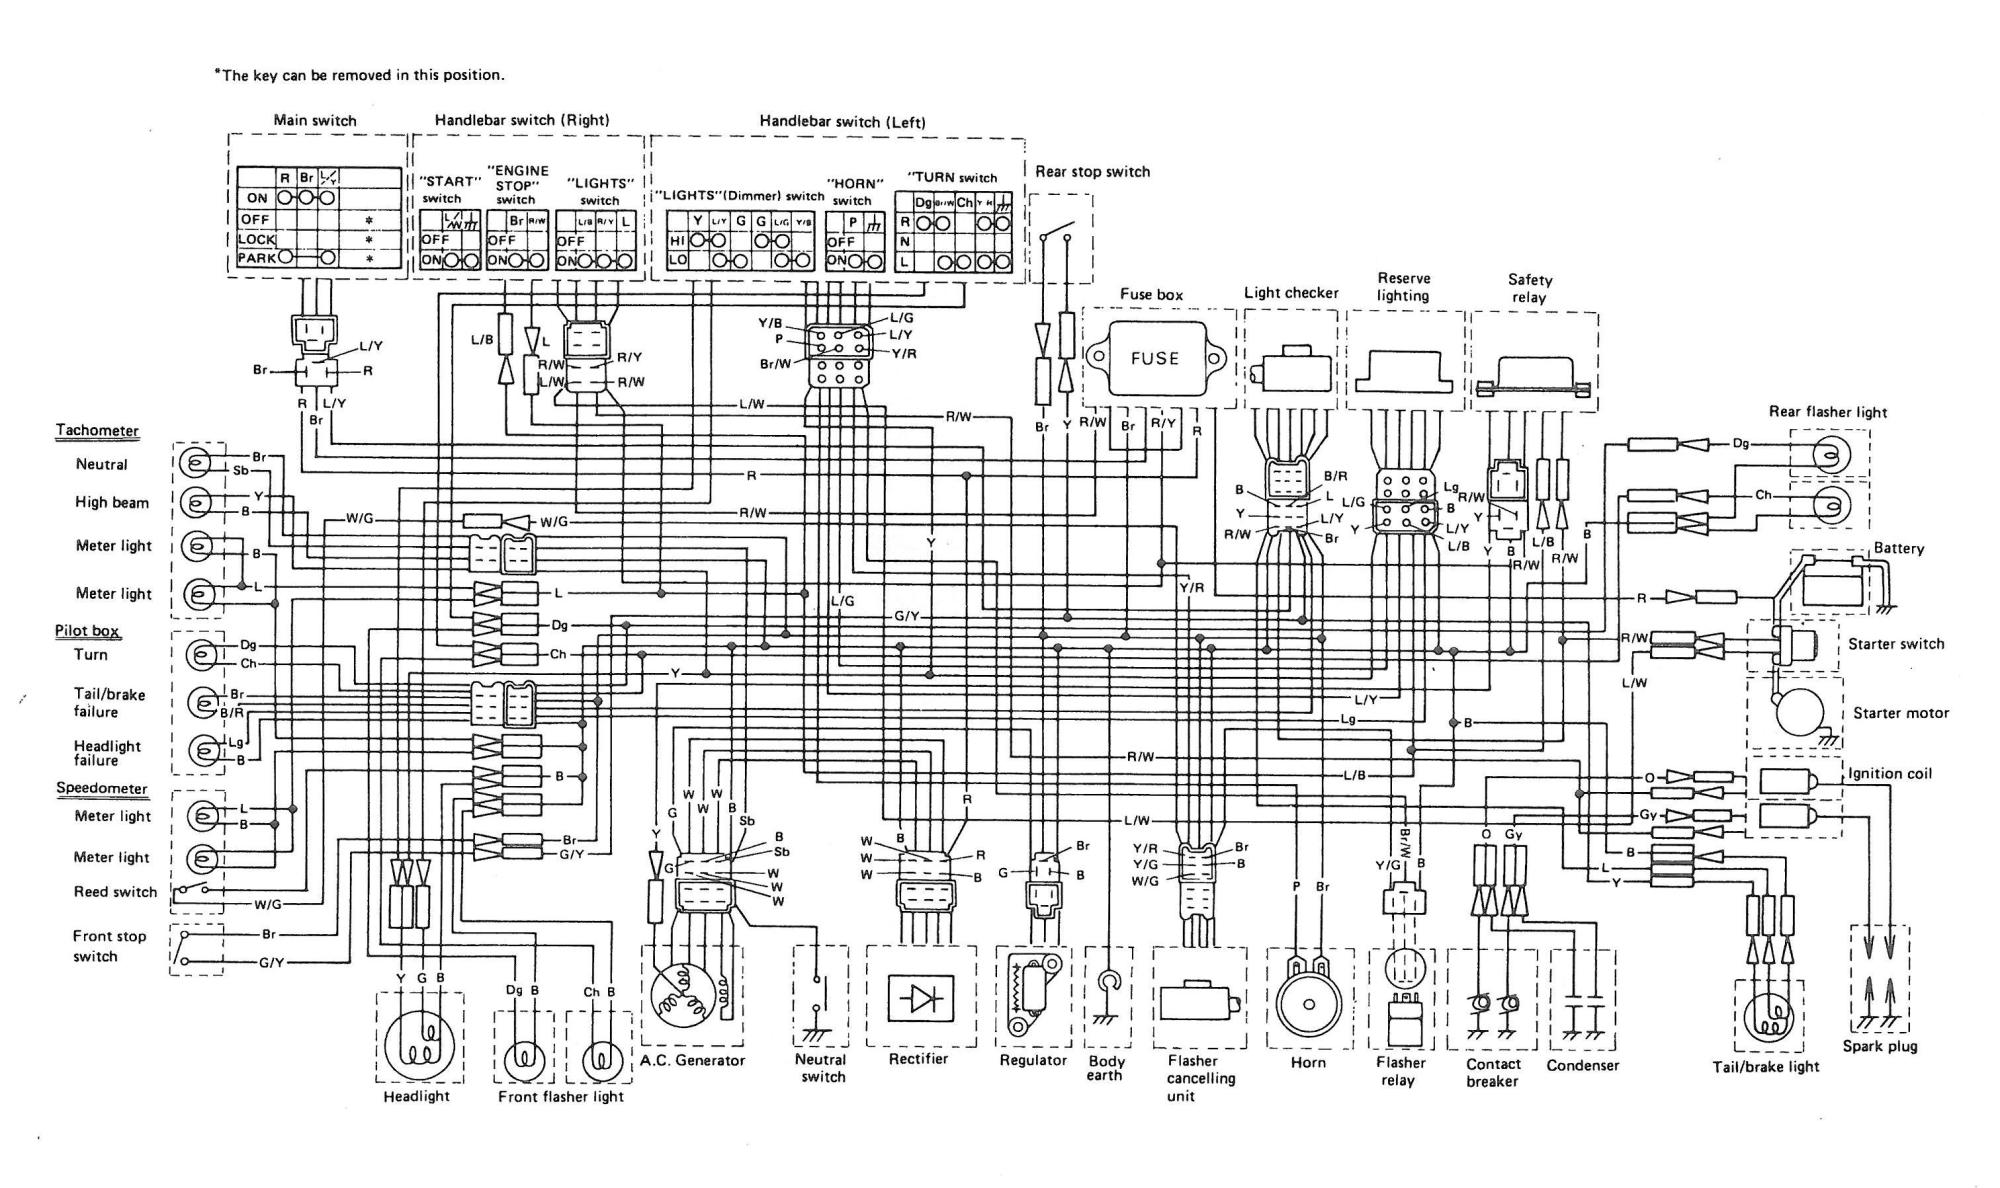 hight resolution of yamaha 250 wiring diagram wiring diagram database 1979 yamaha wiring diagram 1972 yamaha 250 wire diagram